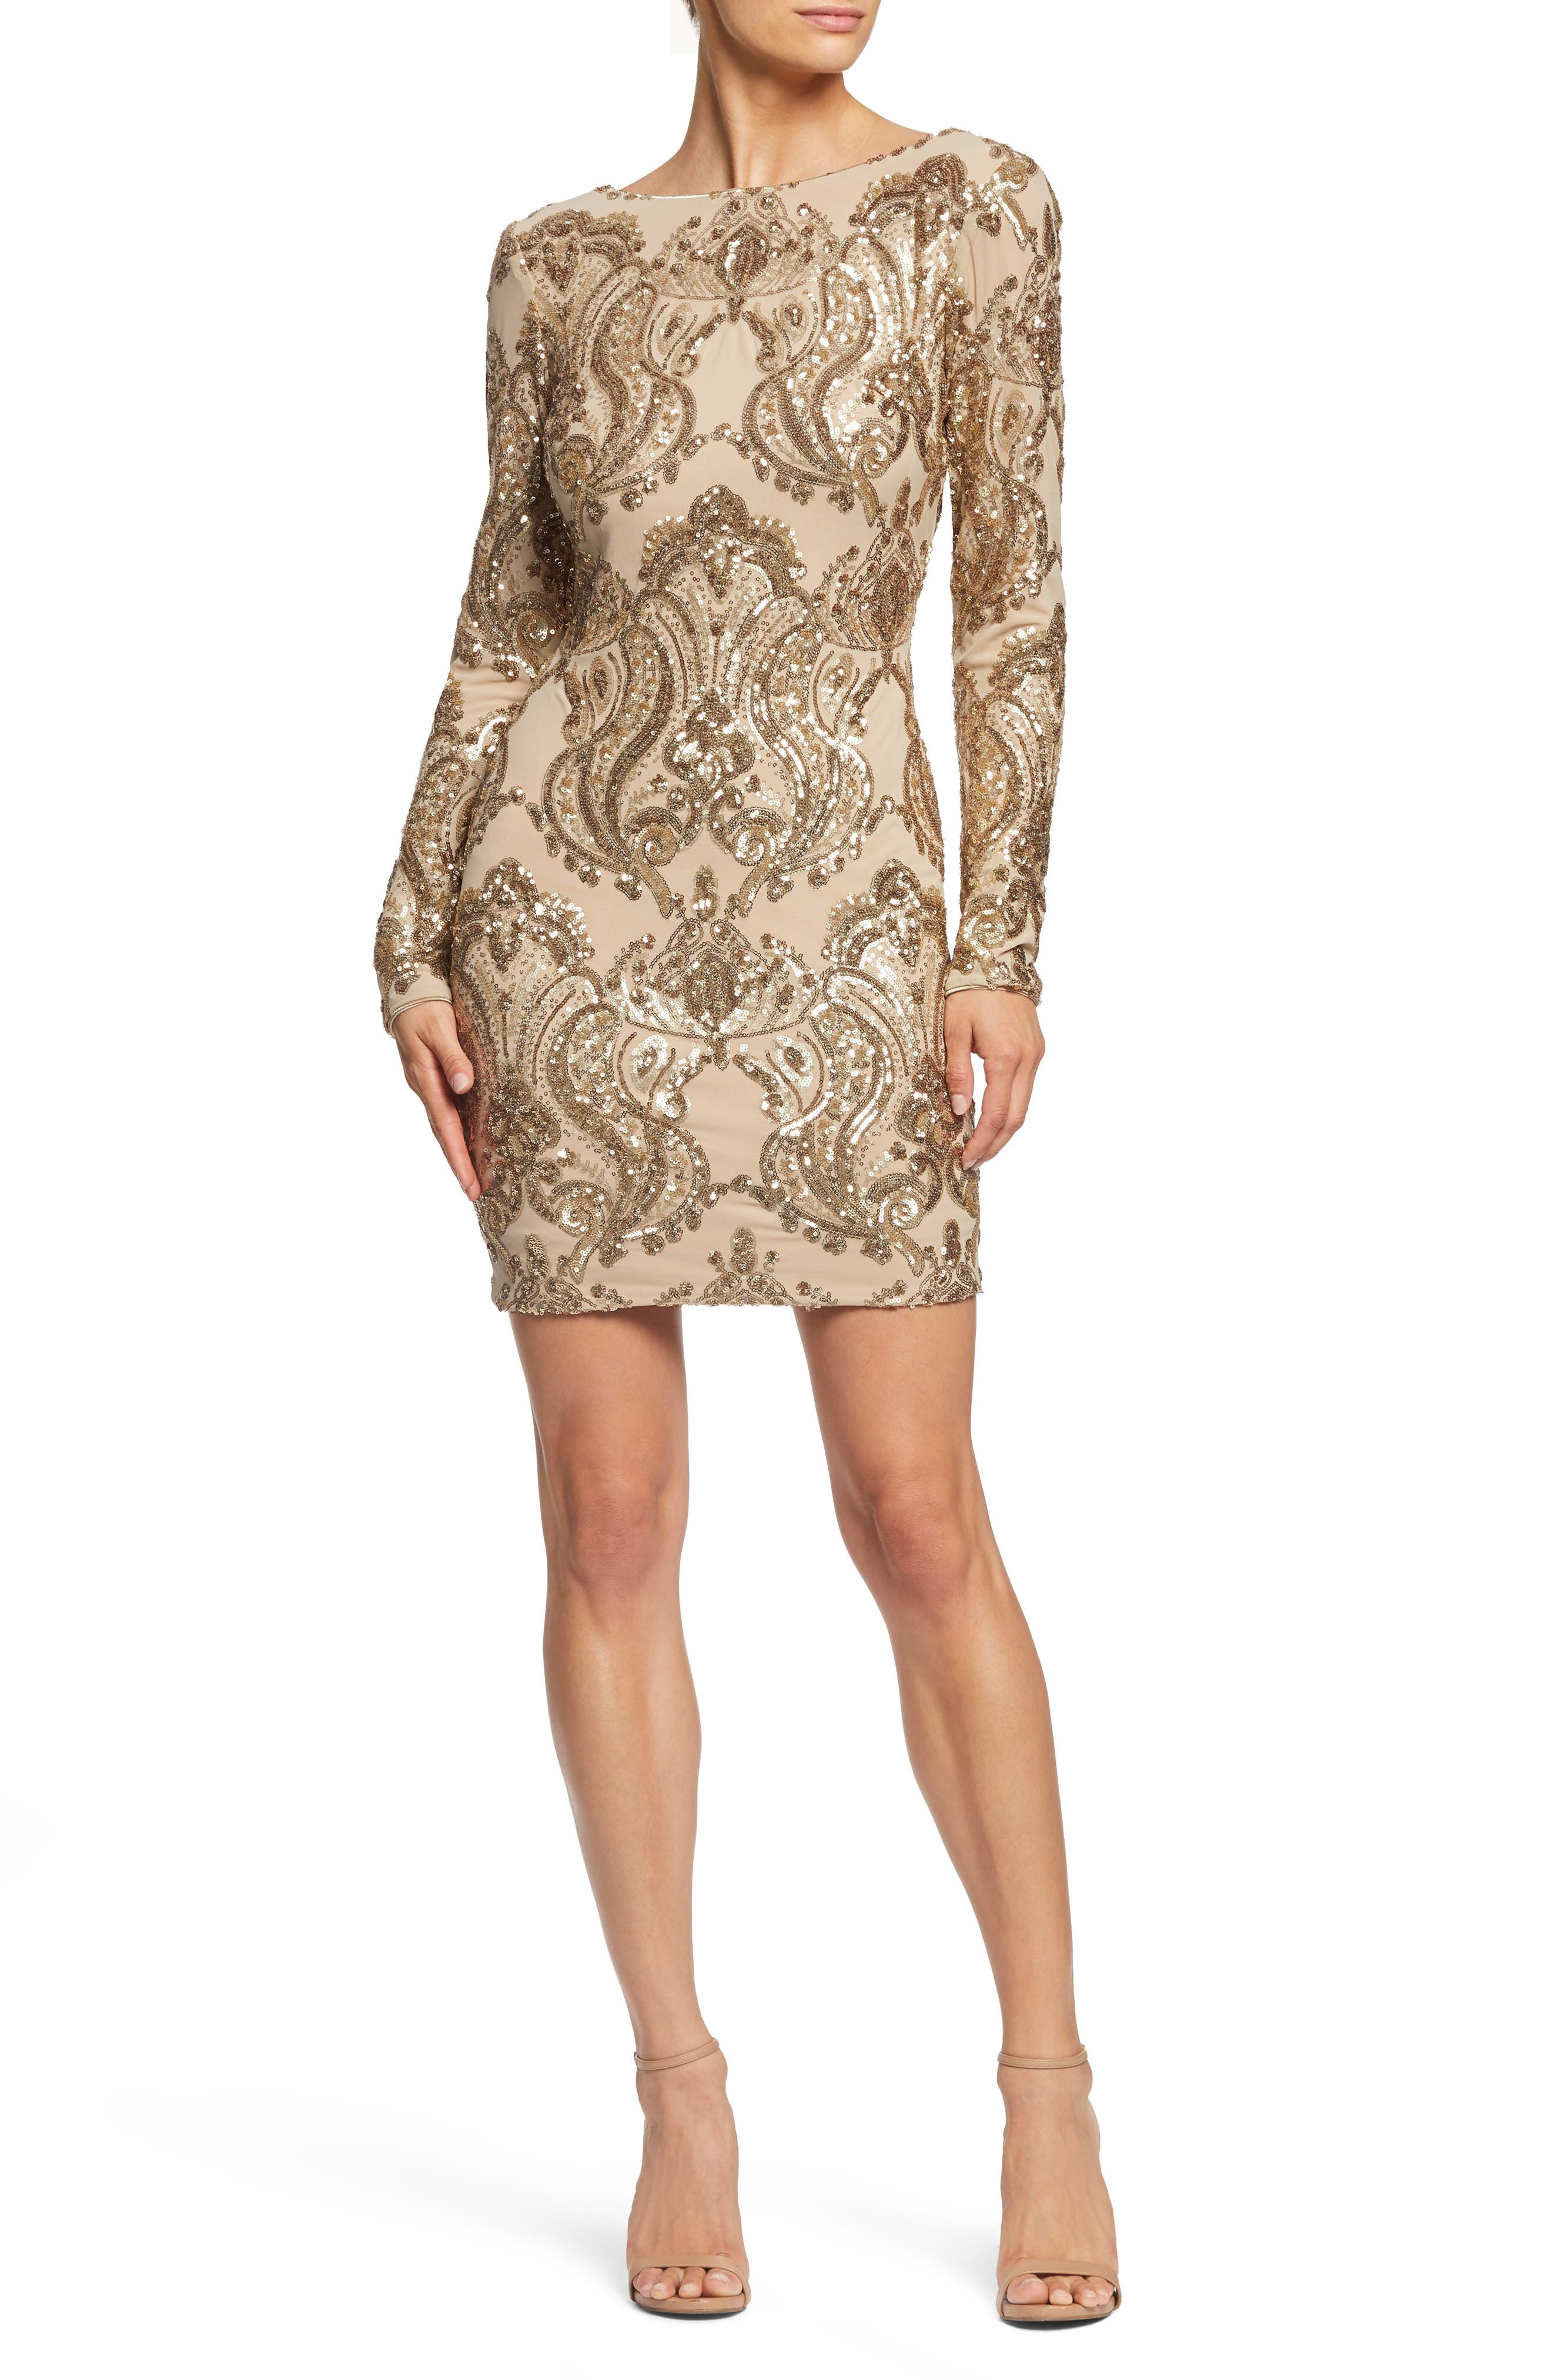 DRESS THE POPULATION, Lola Sequin Body-Con Dress, Main thumbnail 1, color, NUDE/ GOLD